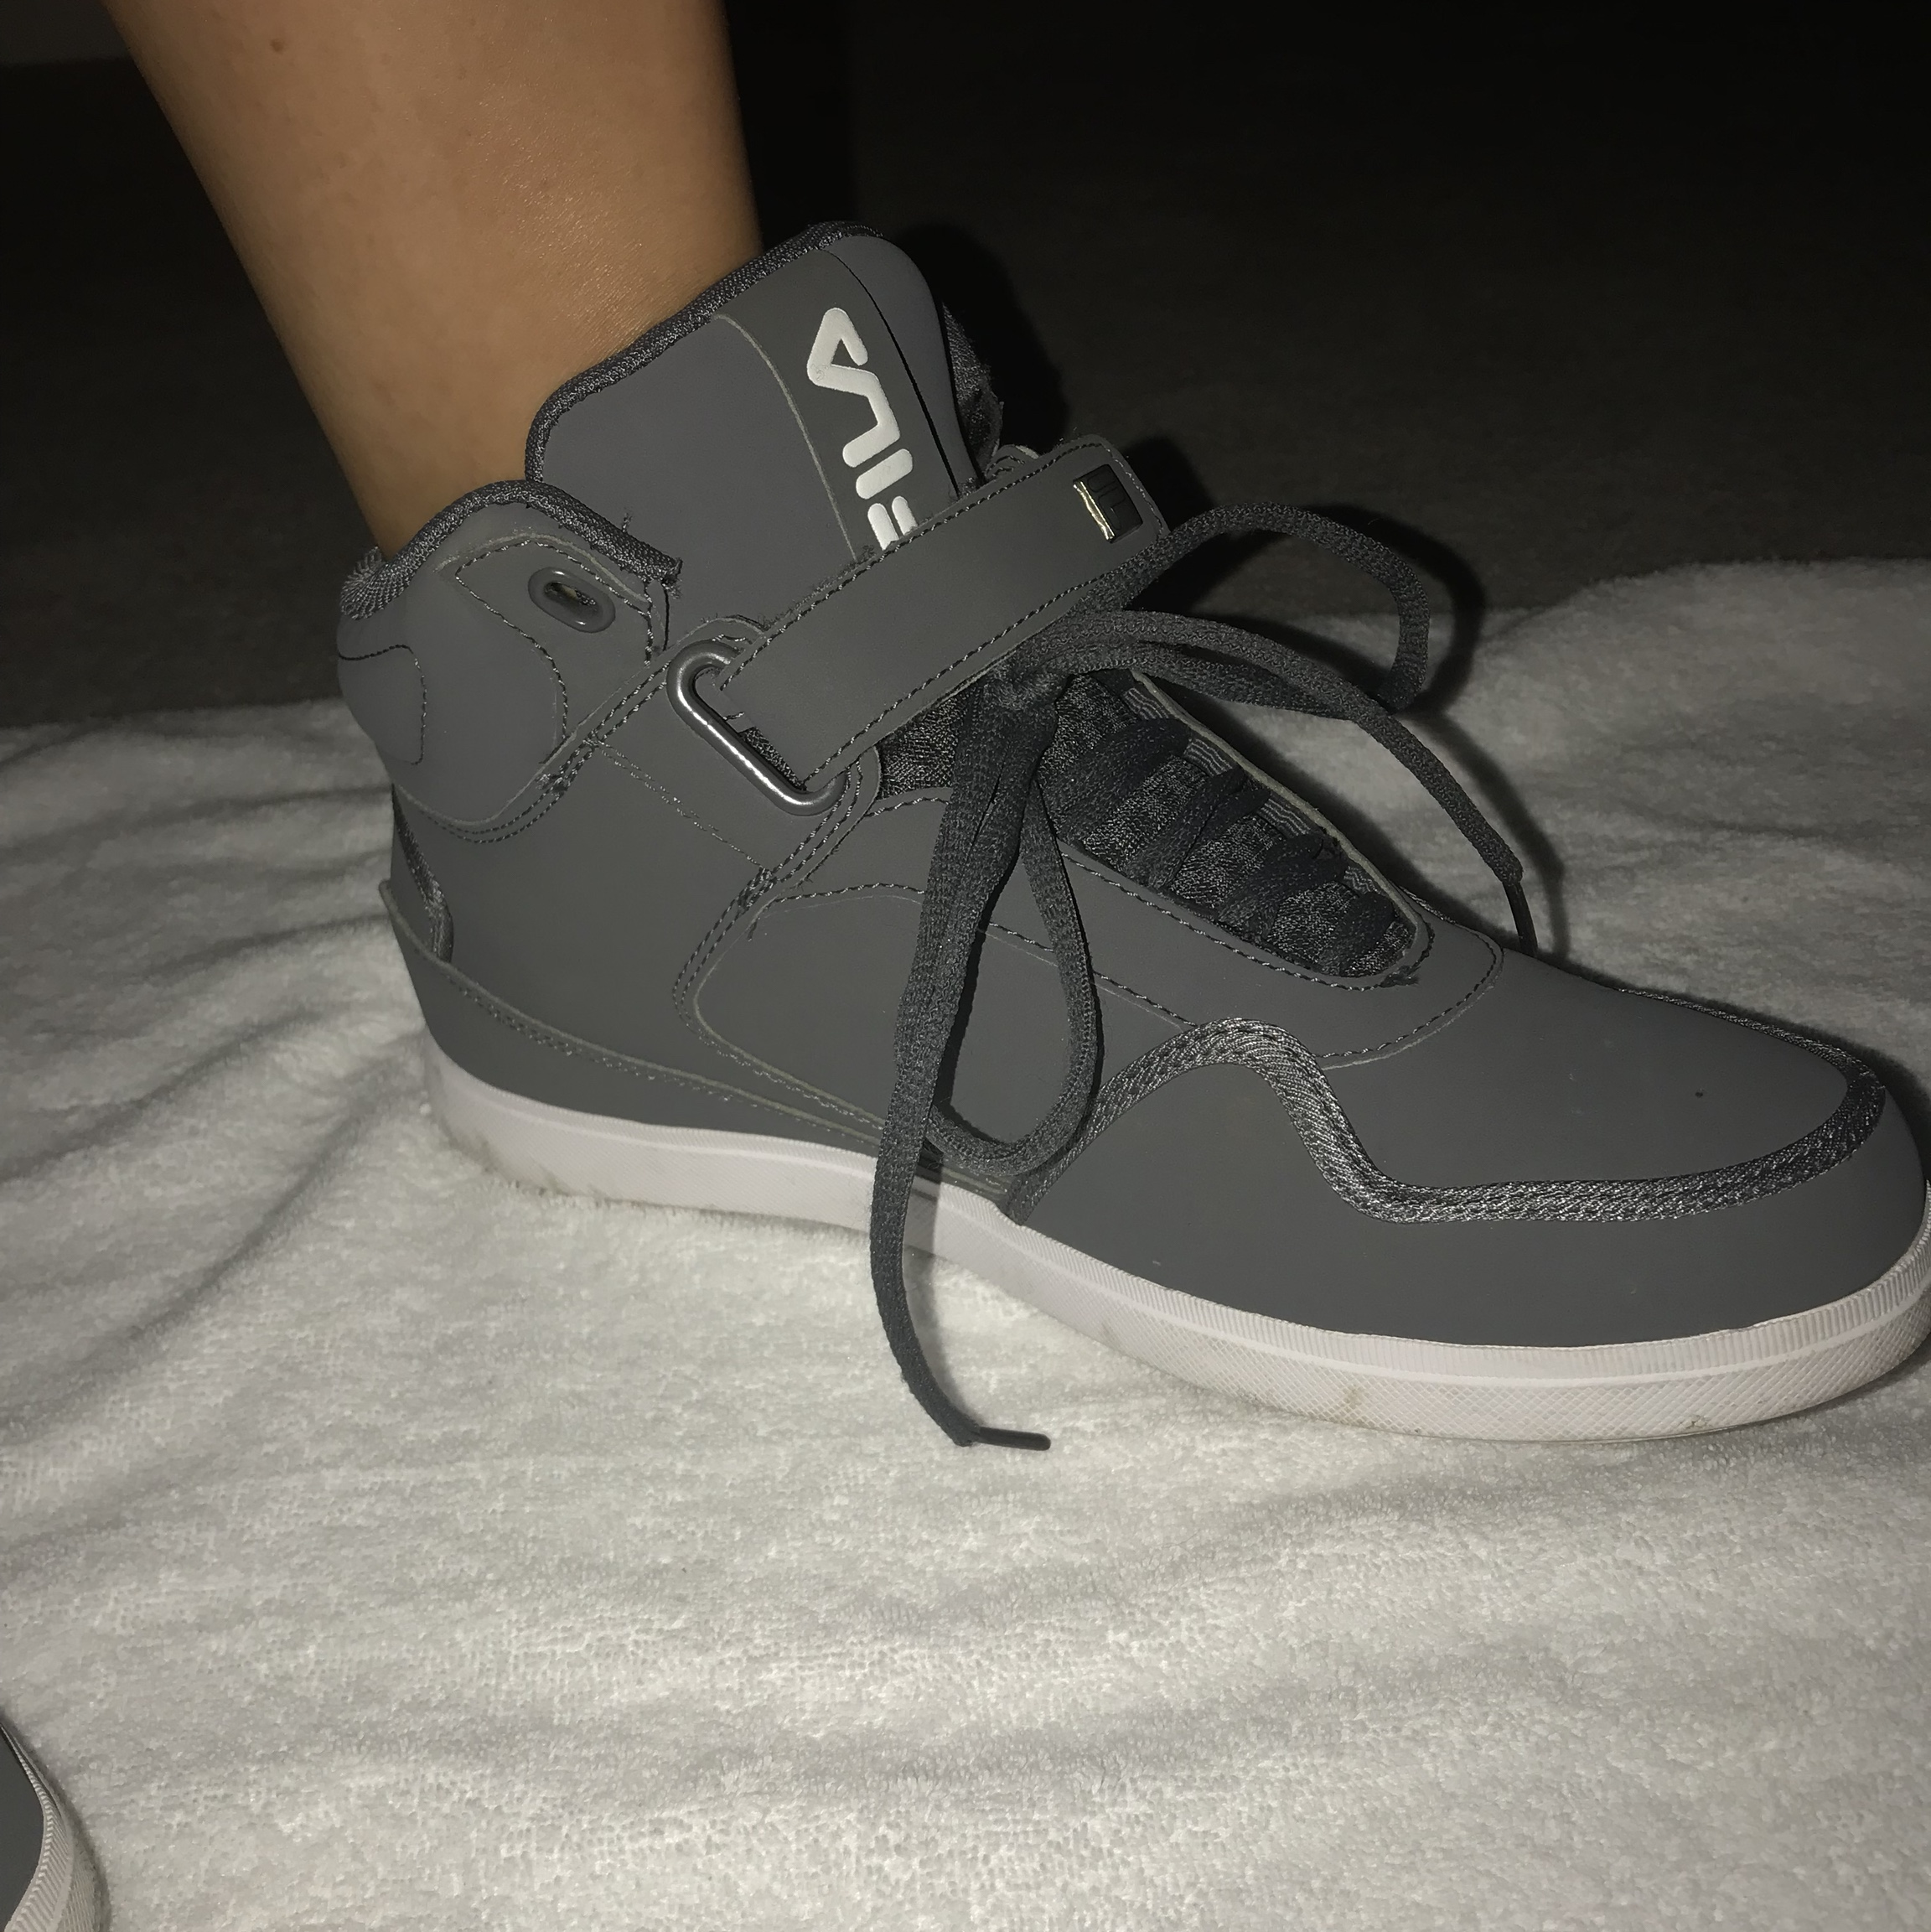 Fila grey high tops with strap and